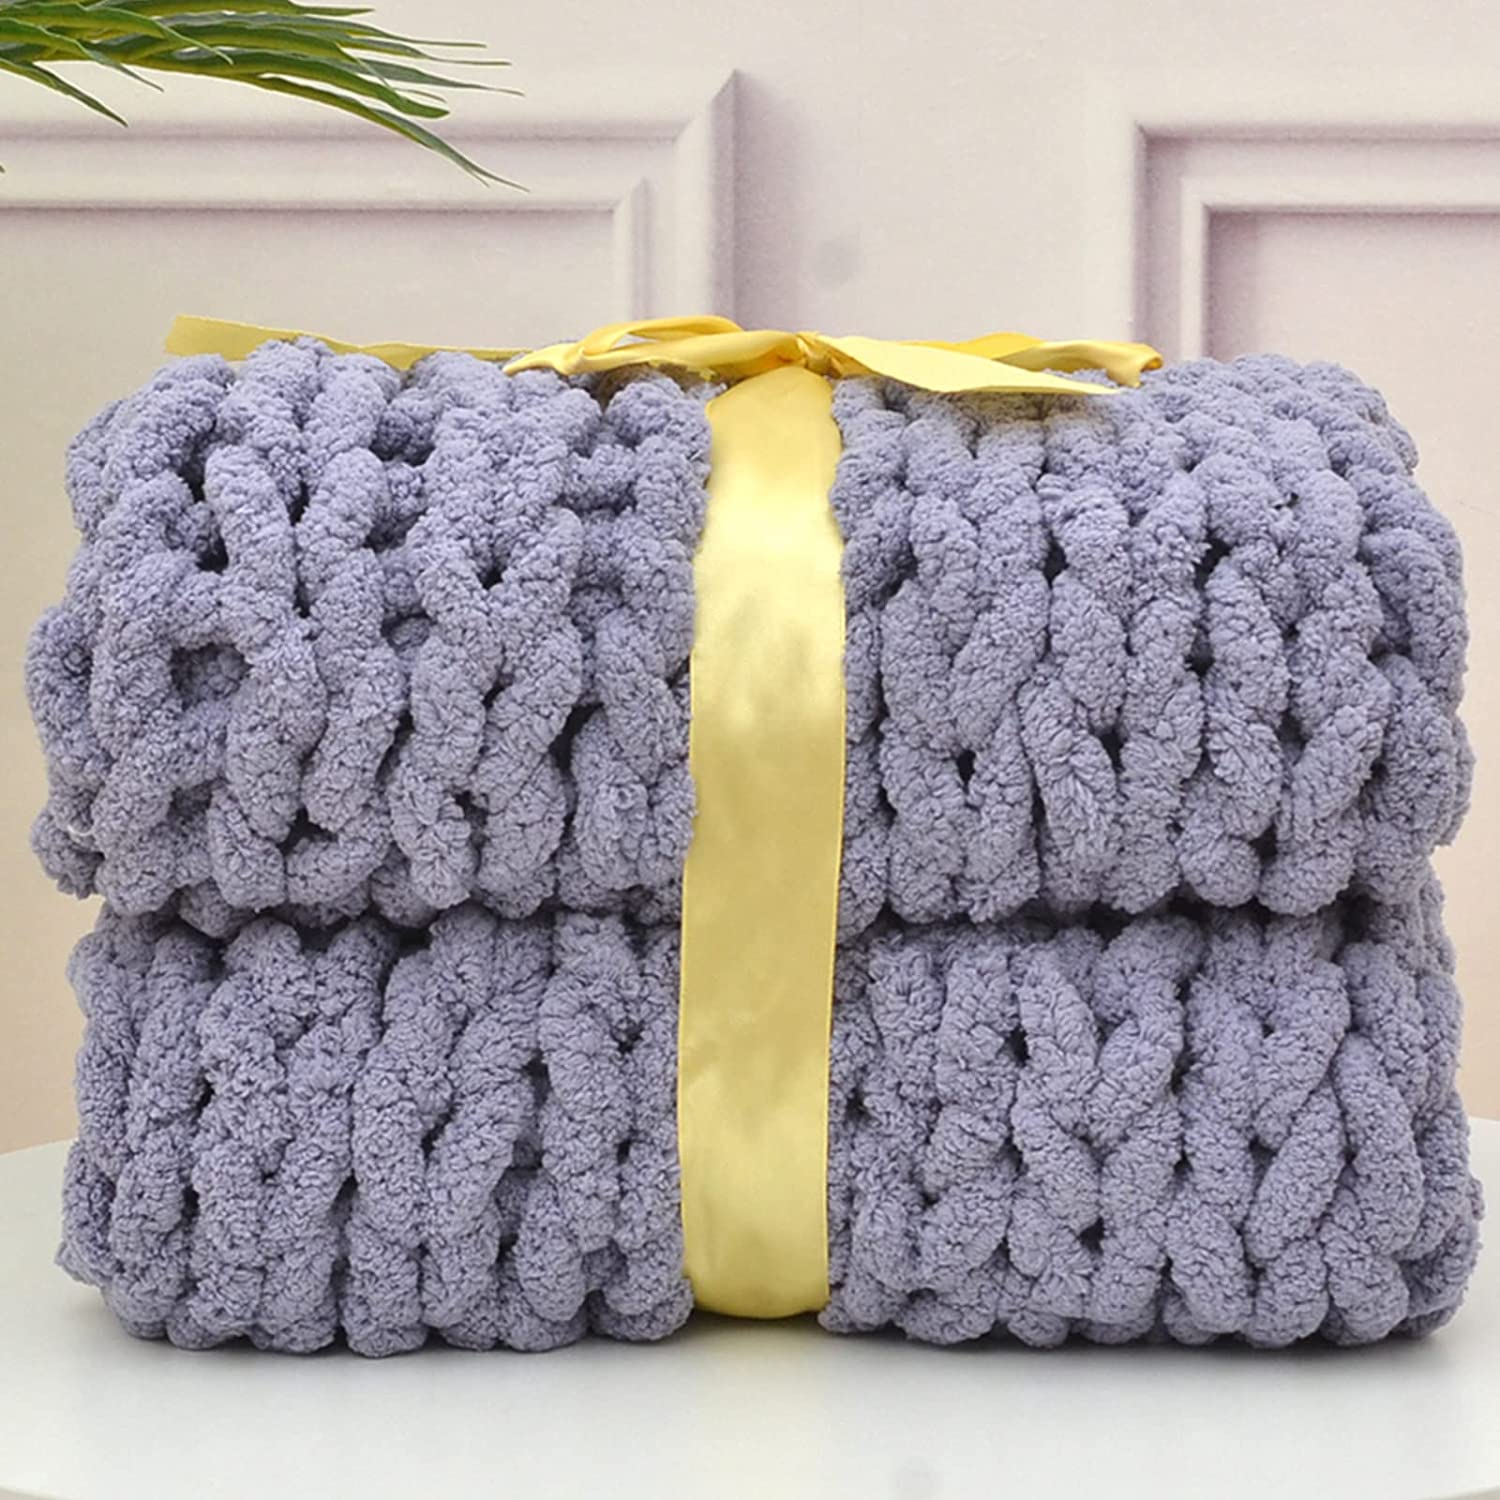 ZUIBESCHOS Chunky Knit New Trust product Blanket Warm Soft Throw Chenille